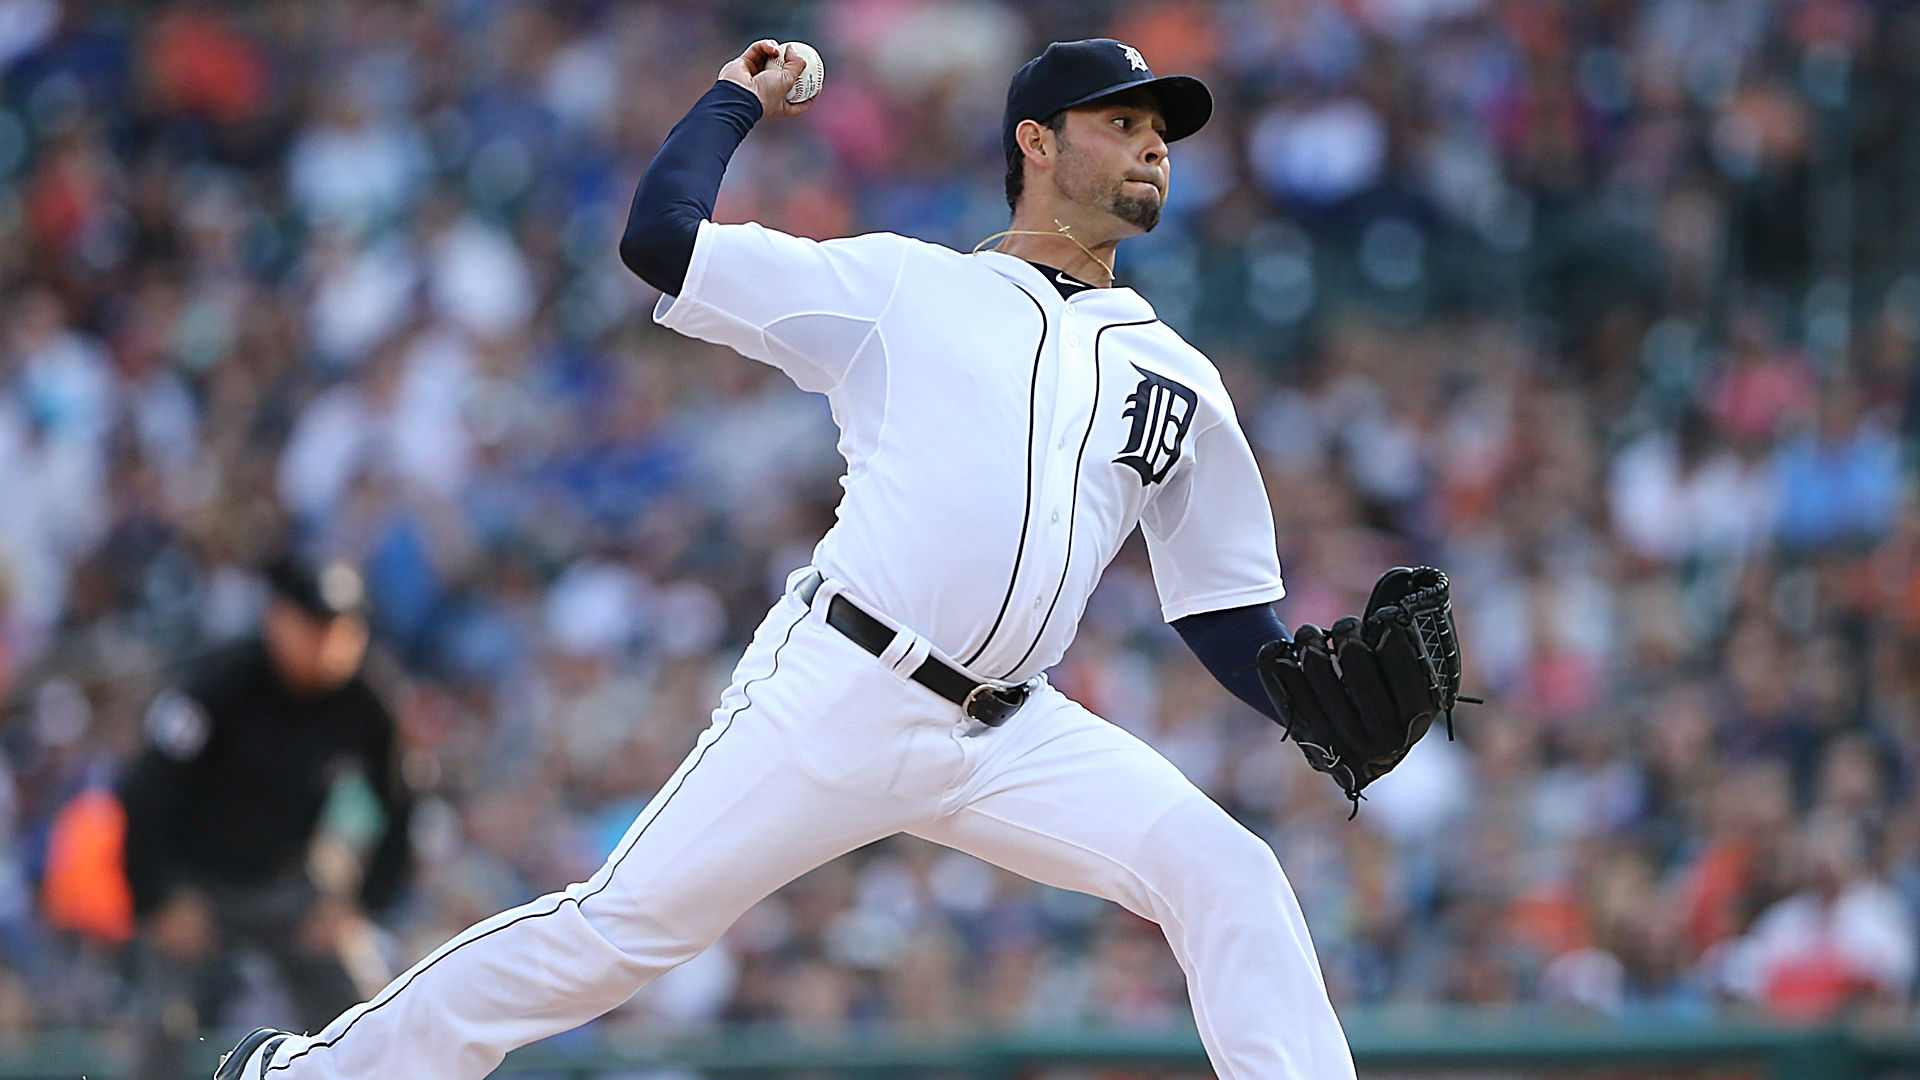 MLB Nightly 9: Anibal Sanchez loses no-hitter in eighth, Cabrera hurt